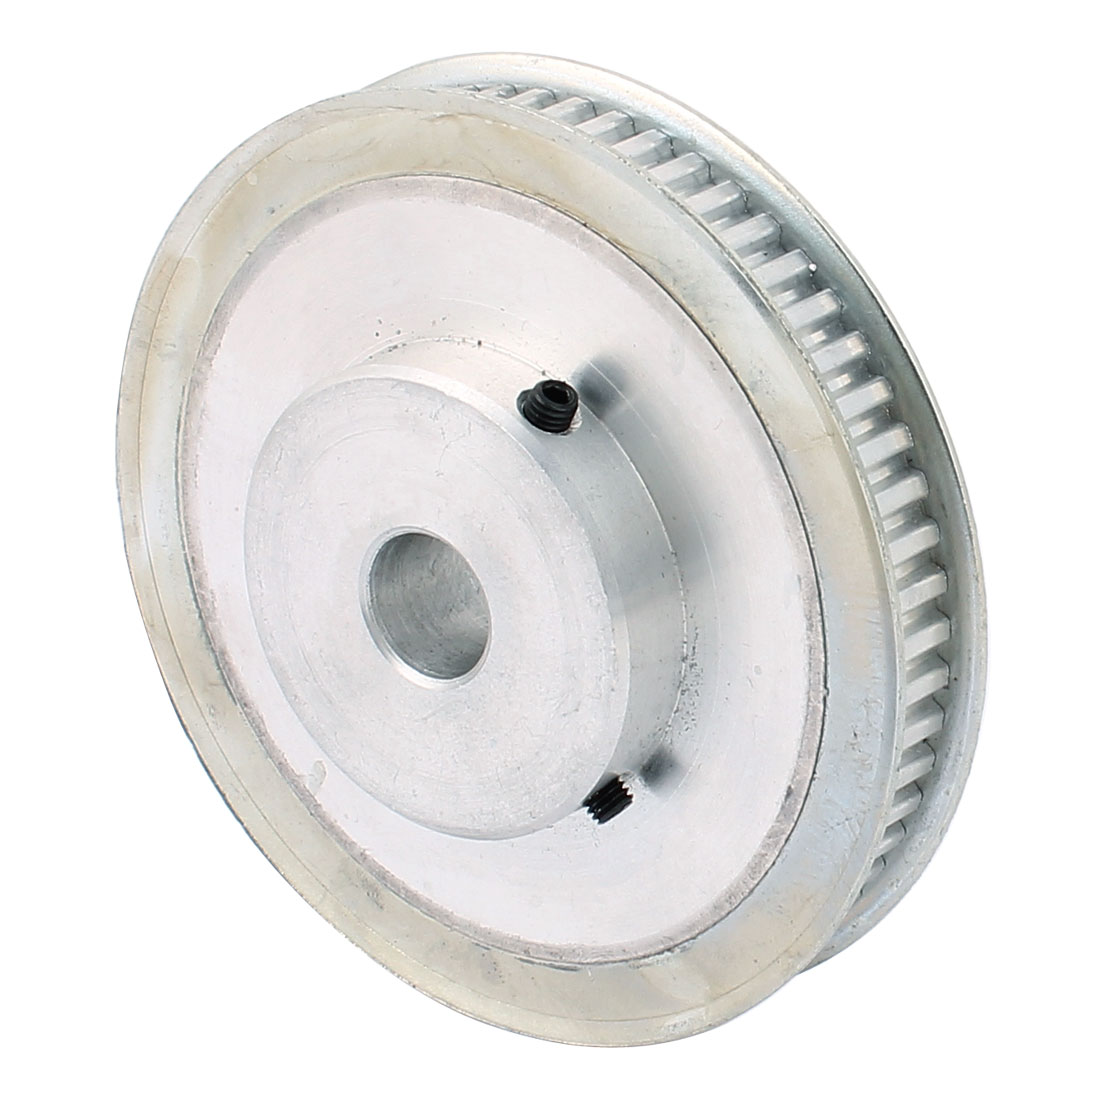 XL60 60 Teeth 15mm Bore Dia 10mm Width Belt Motor Drive Timing Pulley